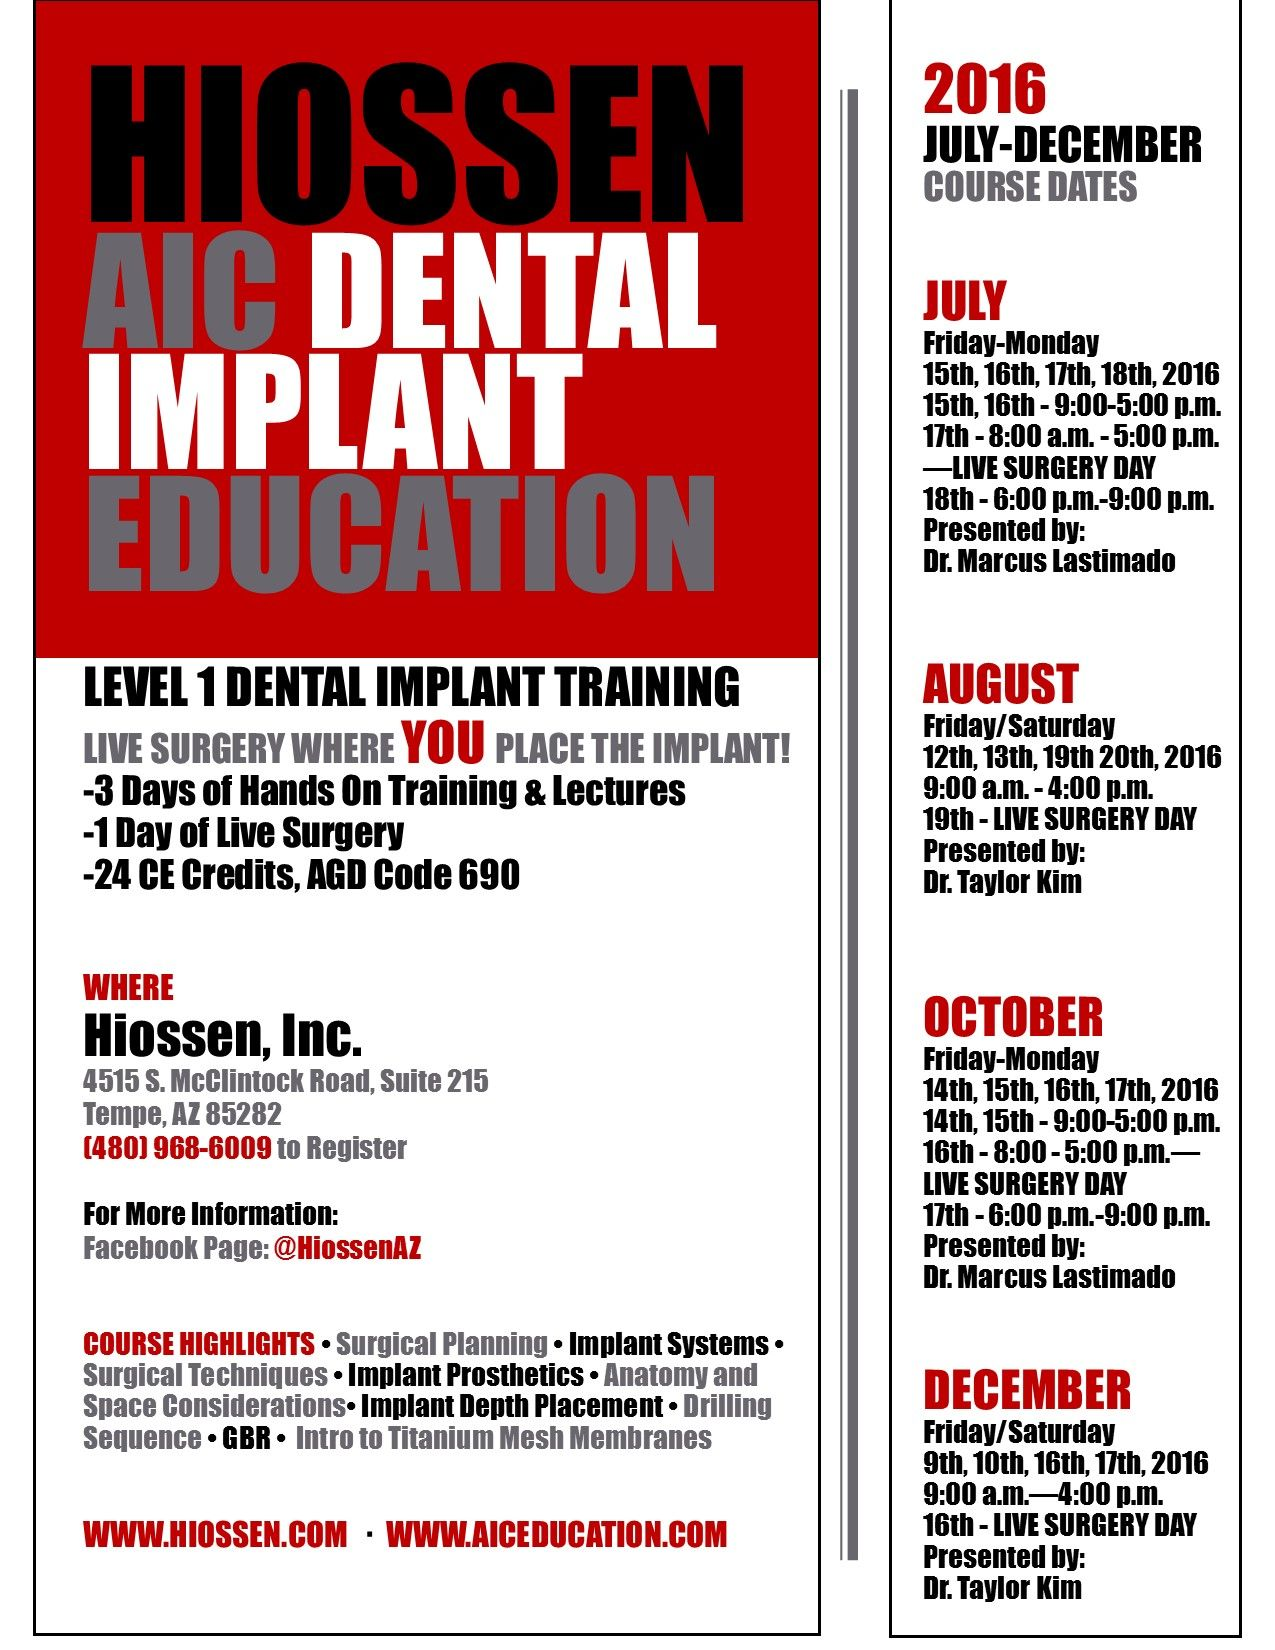 Dental Implant Quotes Hiossen Az  Dental Implant Education  Julydecember 2016 Course